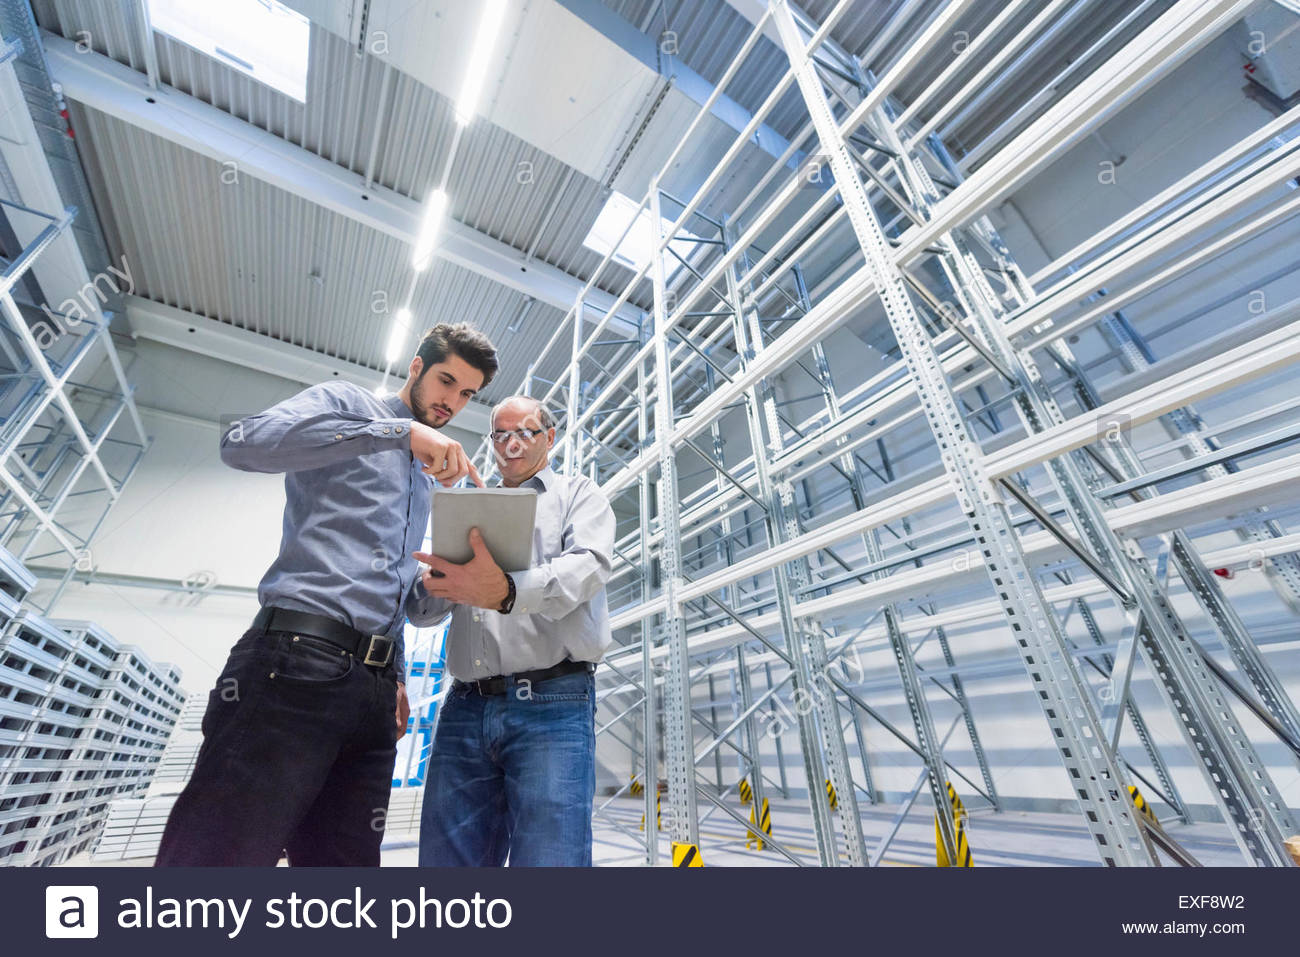 Low angle view of businessman meeting worker in factory warehouse - Stock Image